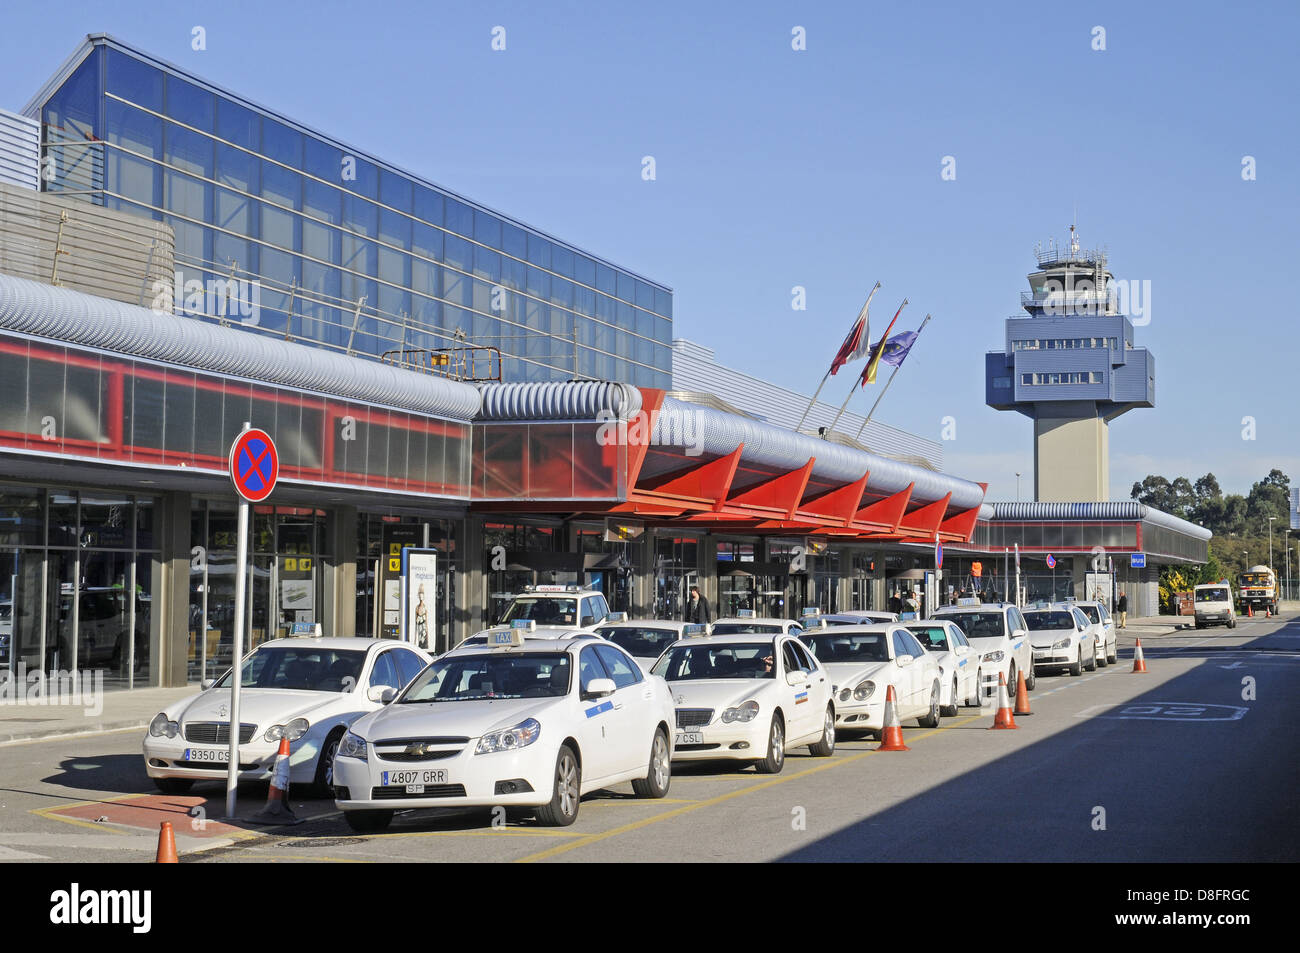 Airport - Stock Image